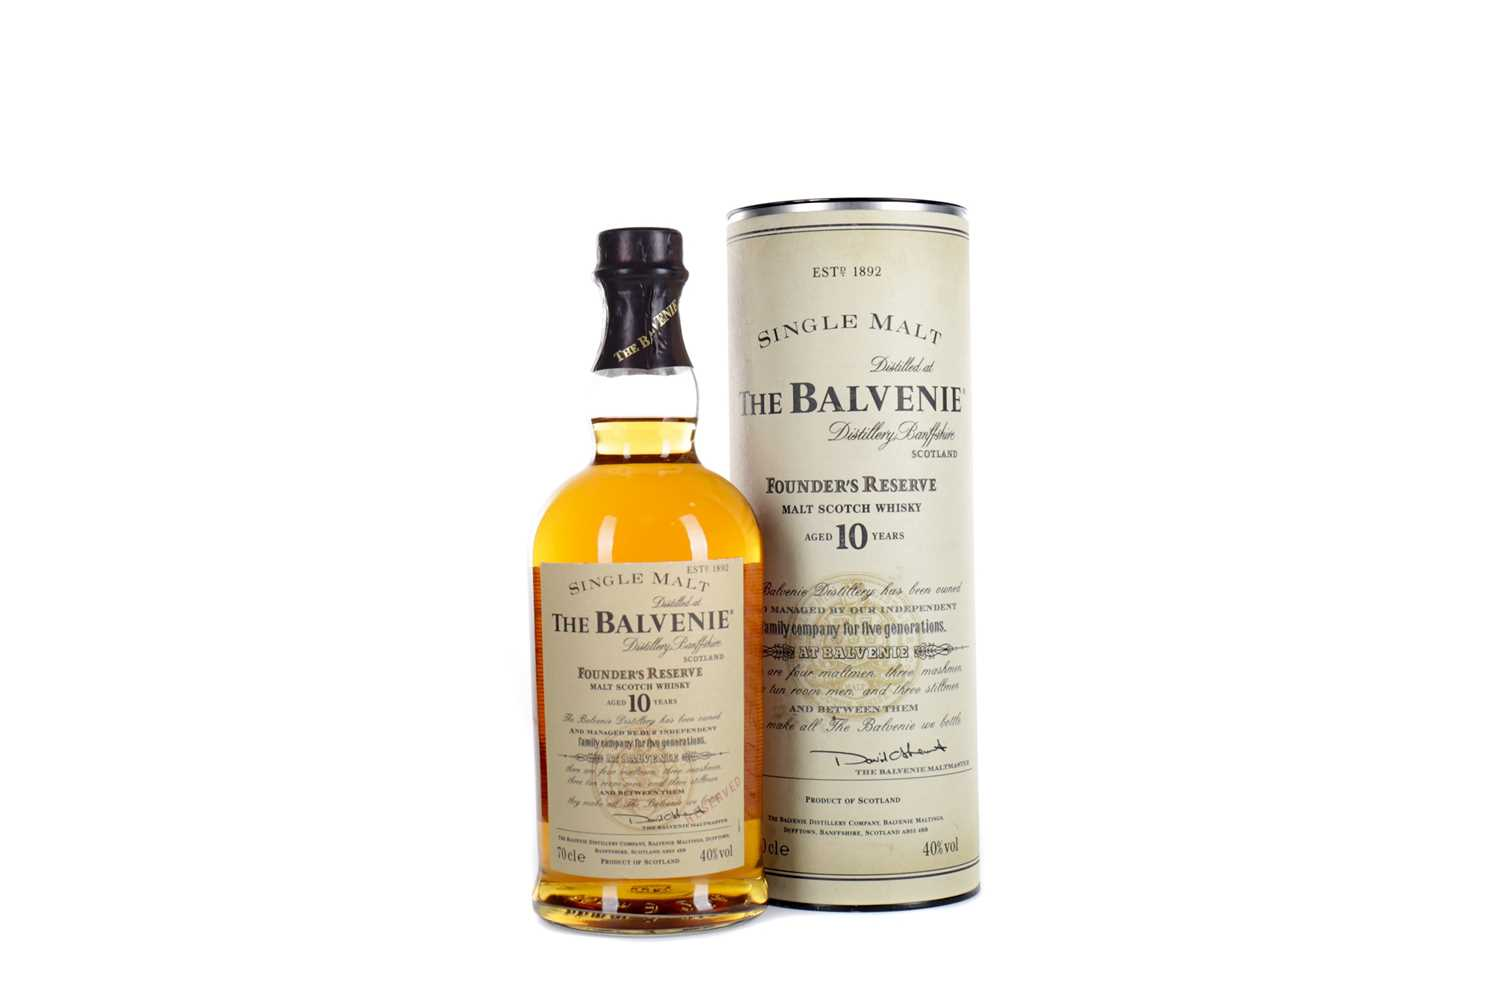 Lot 19 - BALVENIE FOUNDER'S RESERVE AGED 10 YEARS